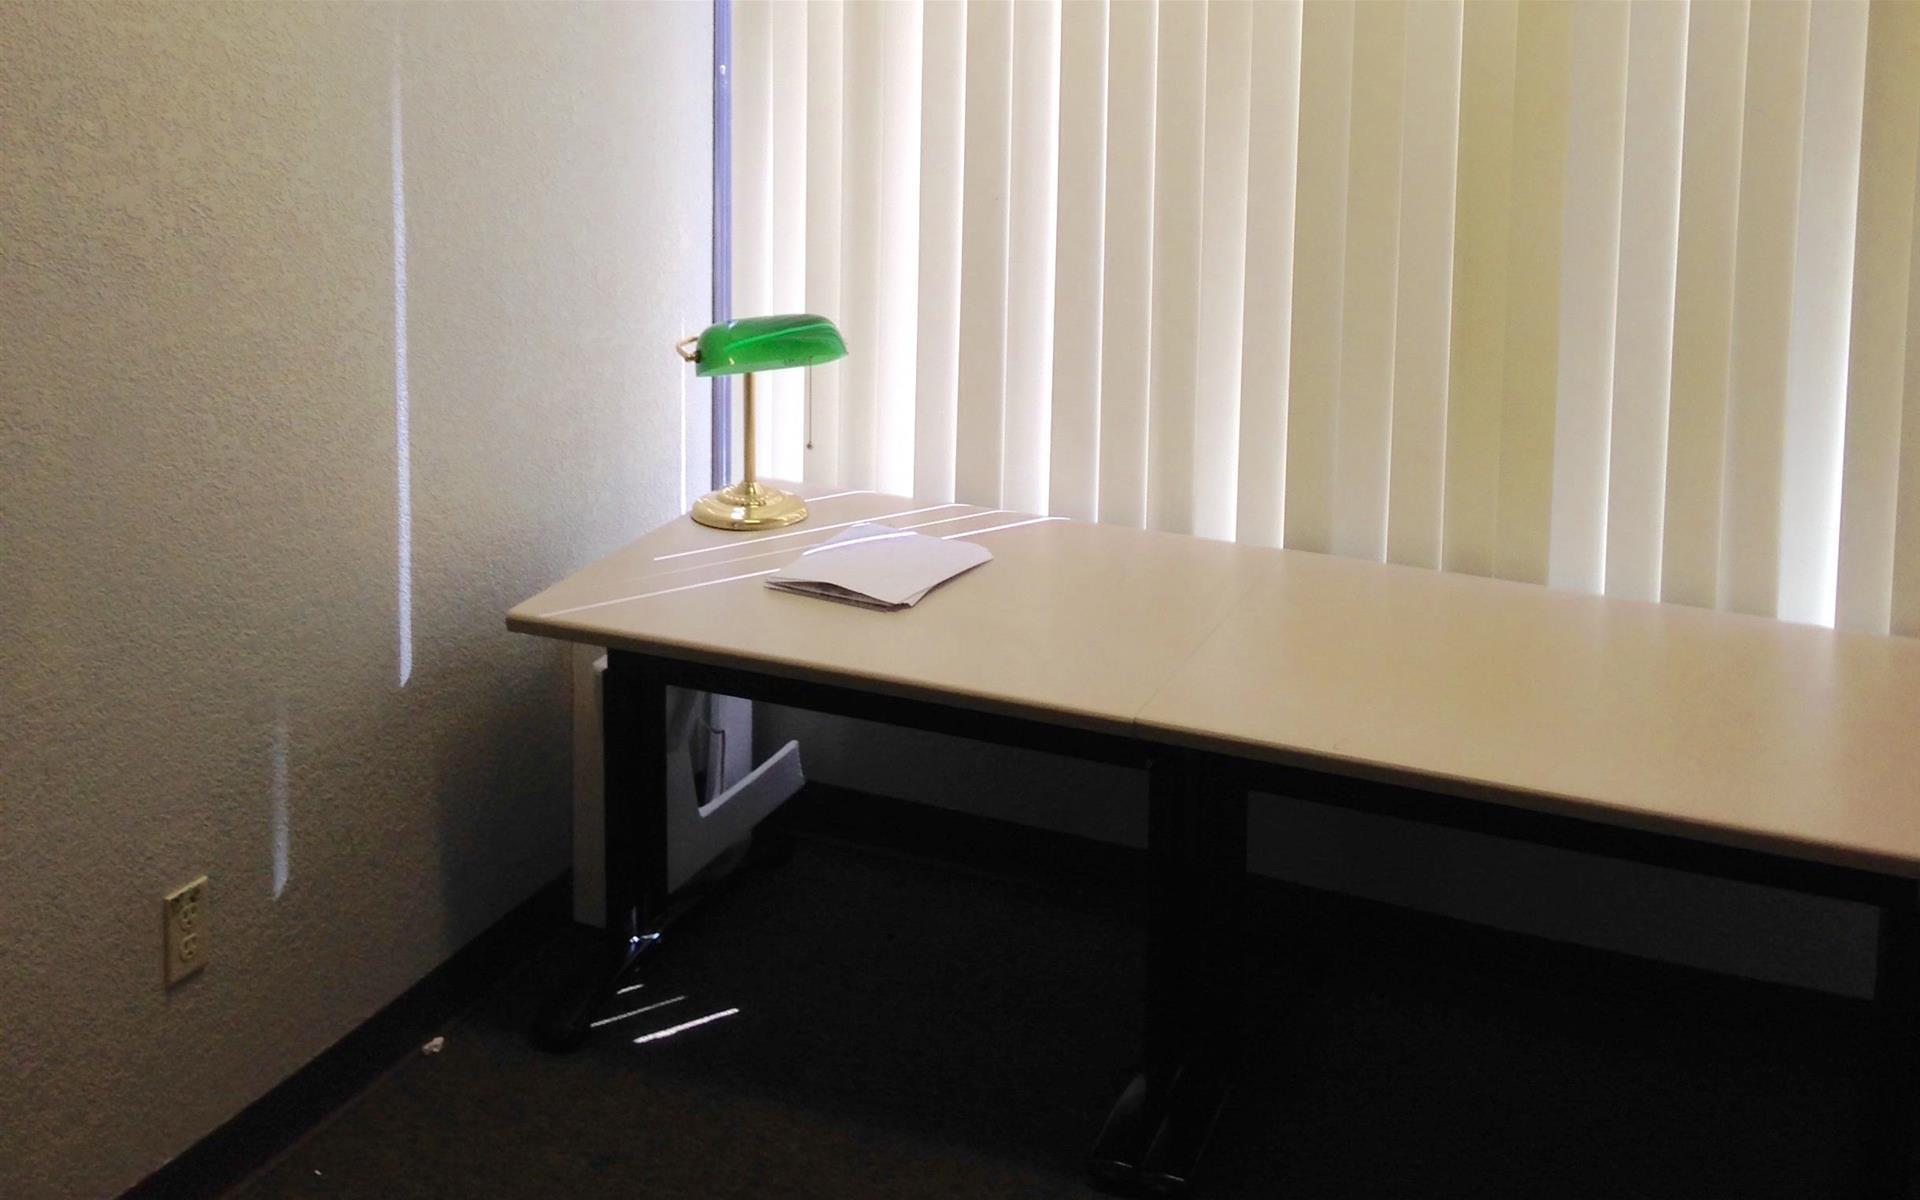 2:10 Impact Hub - Suite 210 - Small Office for 1-2